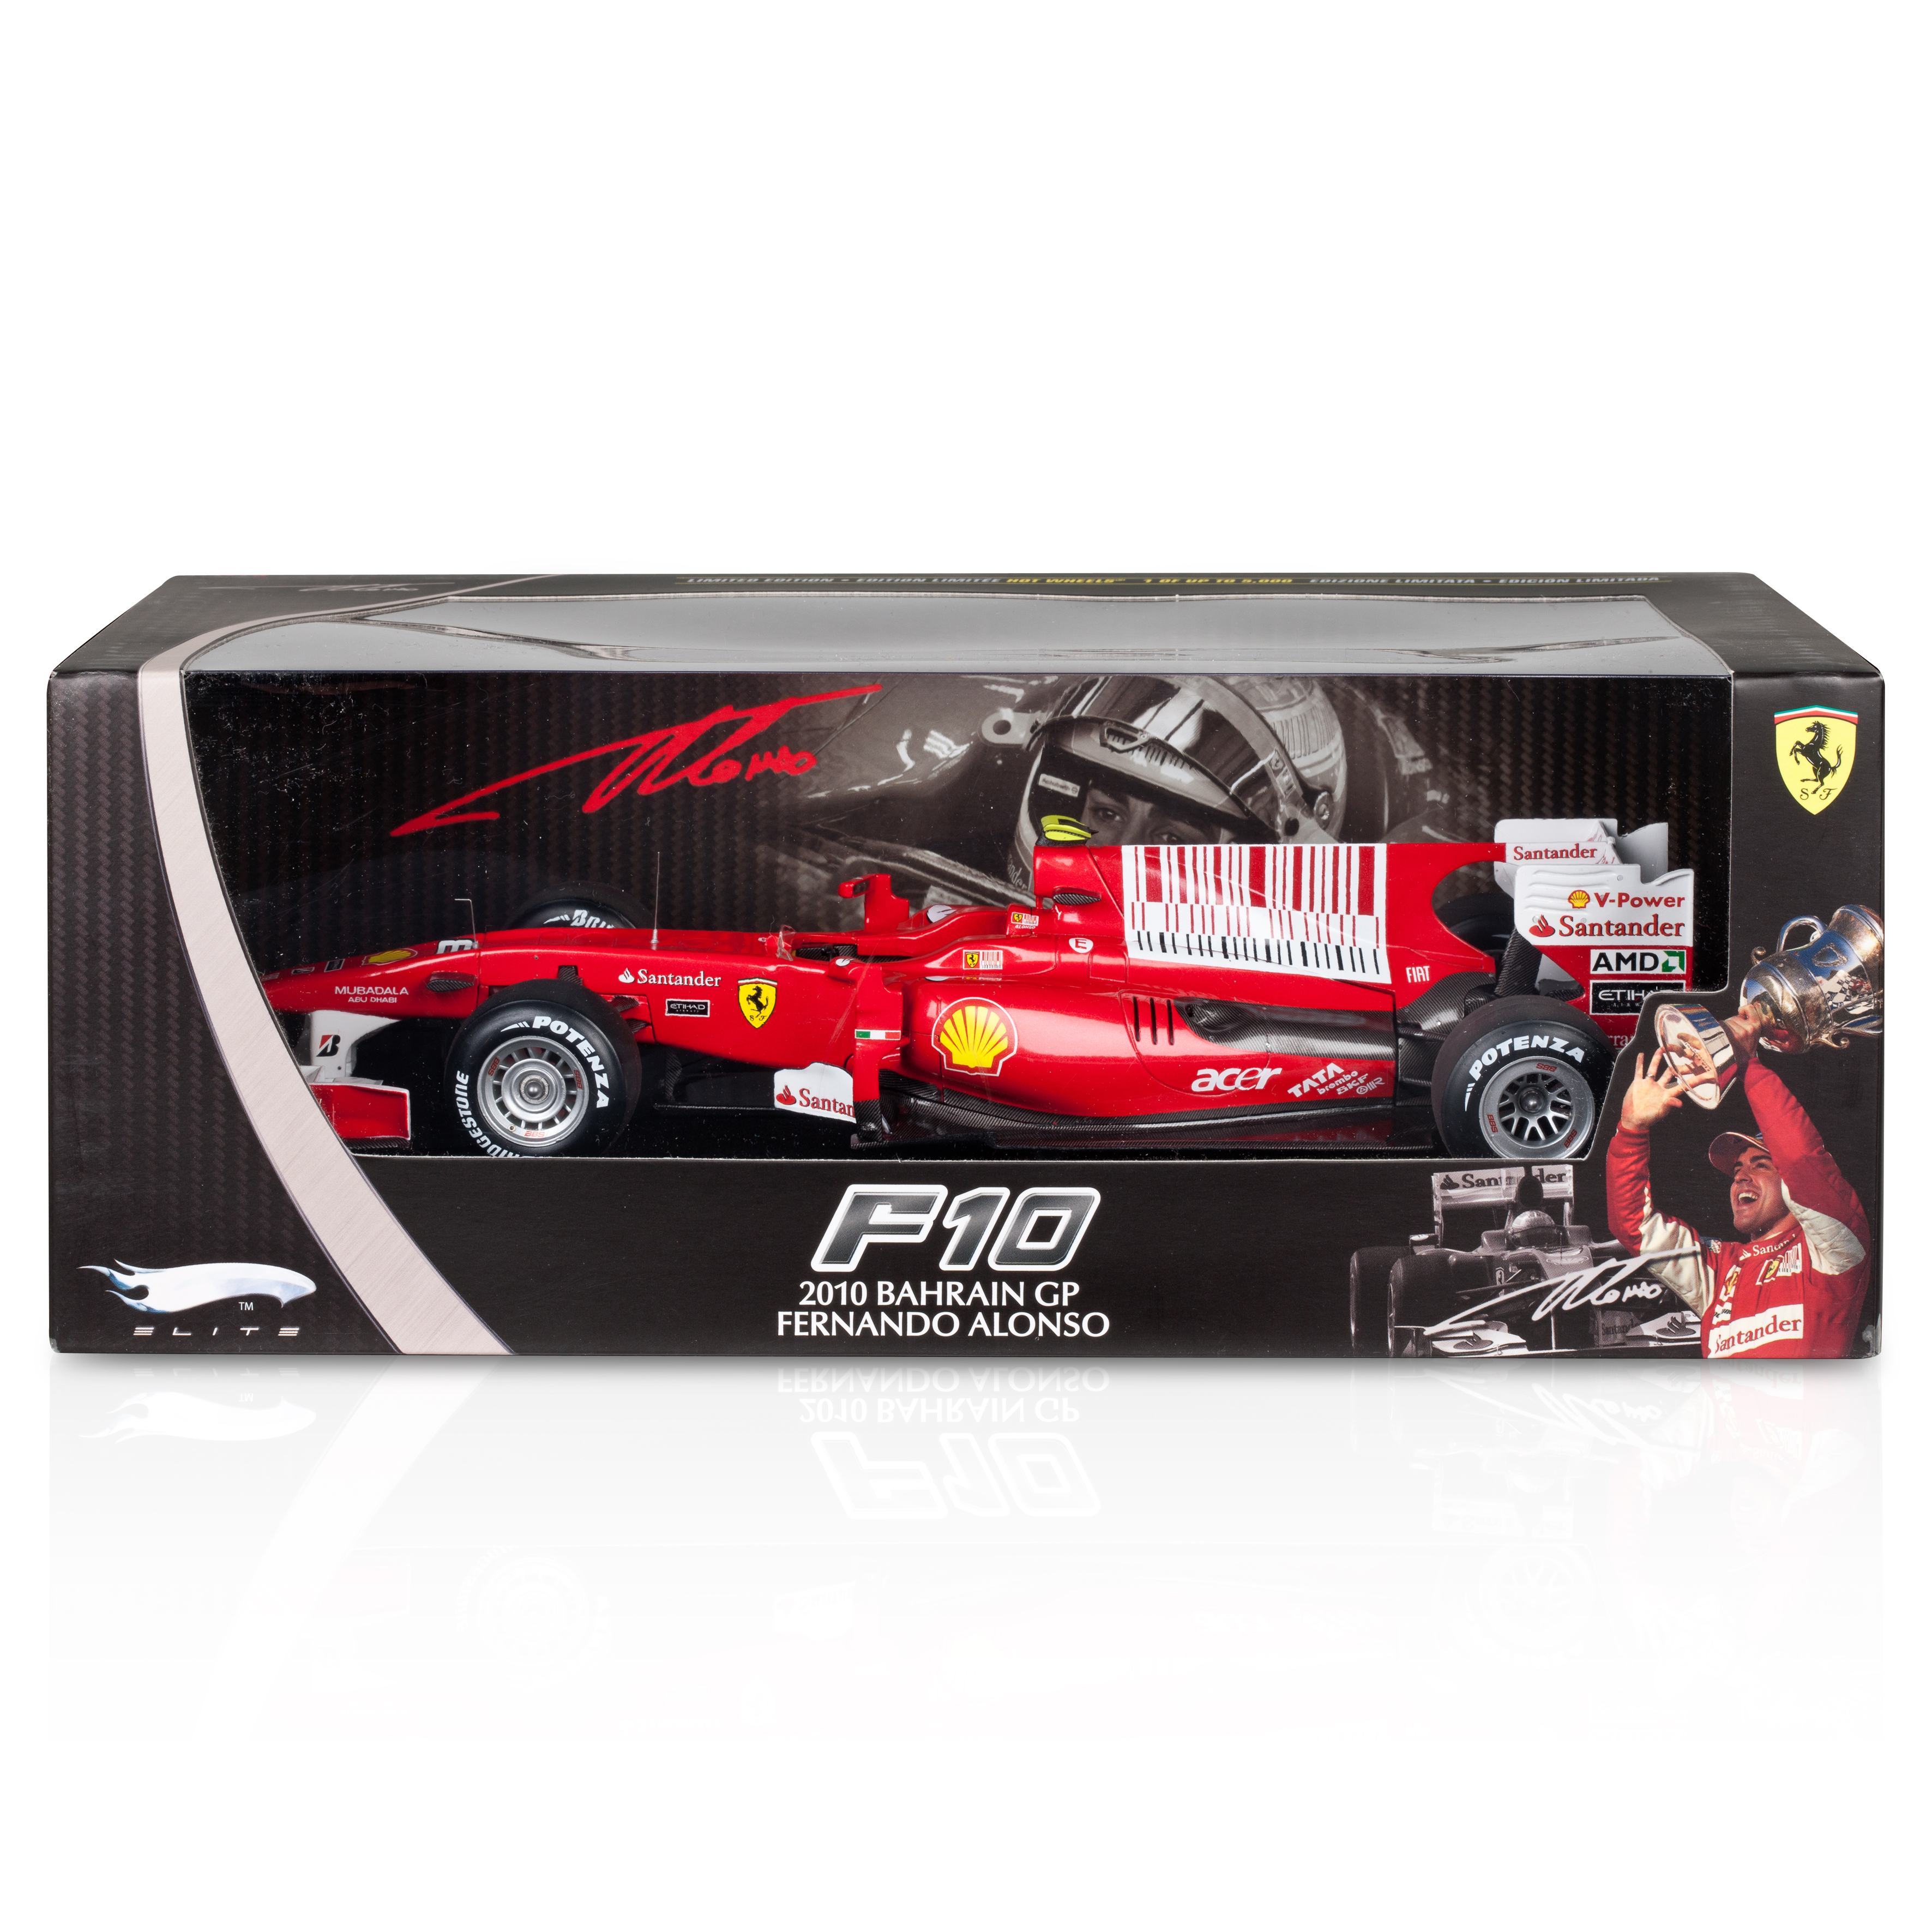 Fernando Alonso Ferrari F1 2010 Bahrain Winner Super Detail 1:18 Scale